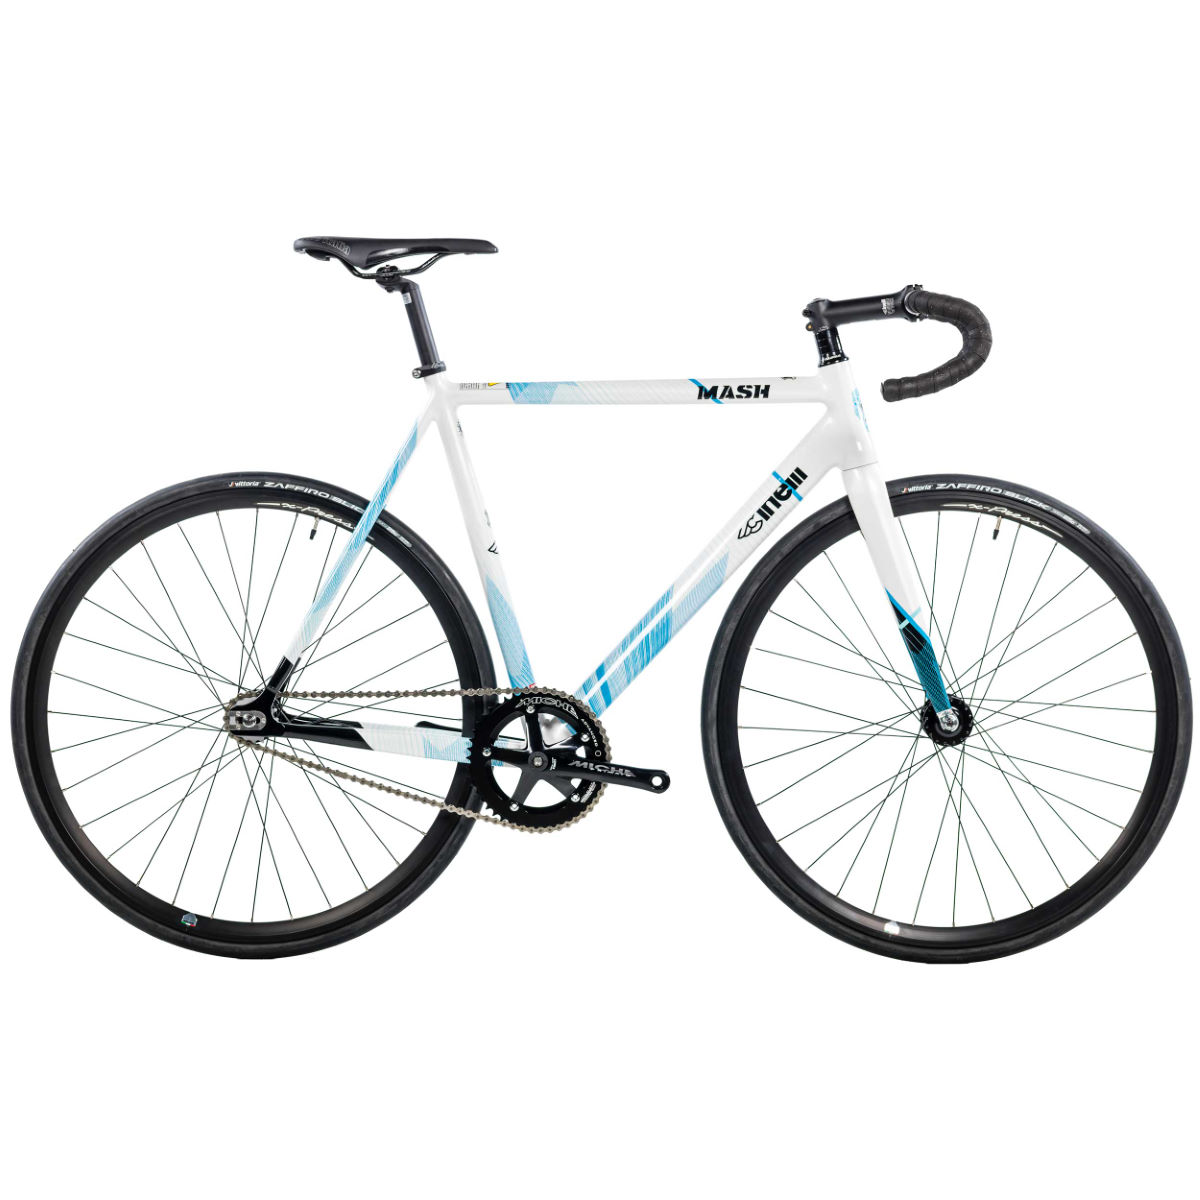 Vélo Cinelli MASH Parallax Single Speed (2017) - M Stock Bike Cyan Single speed